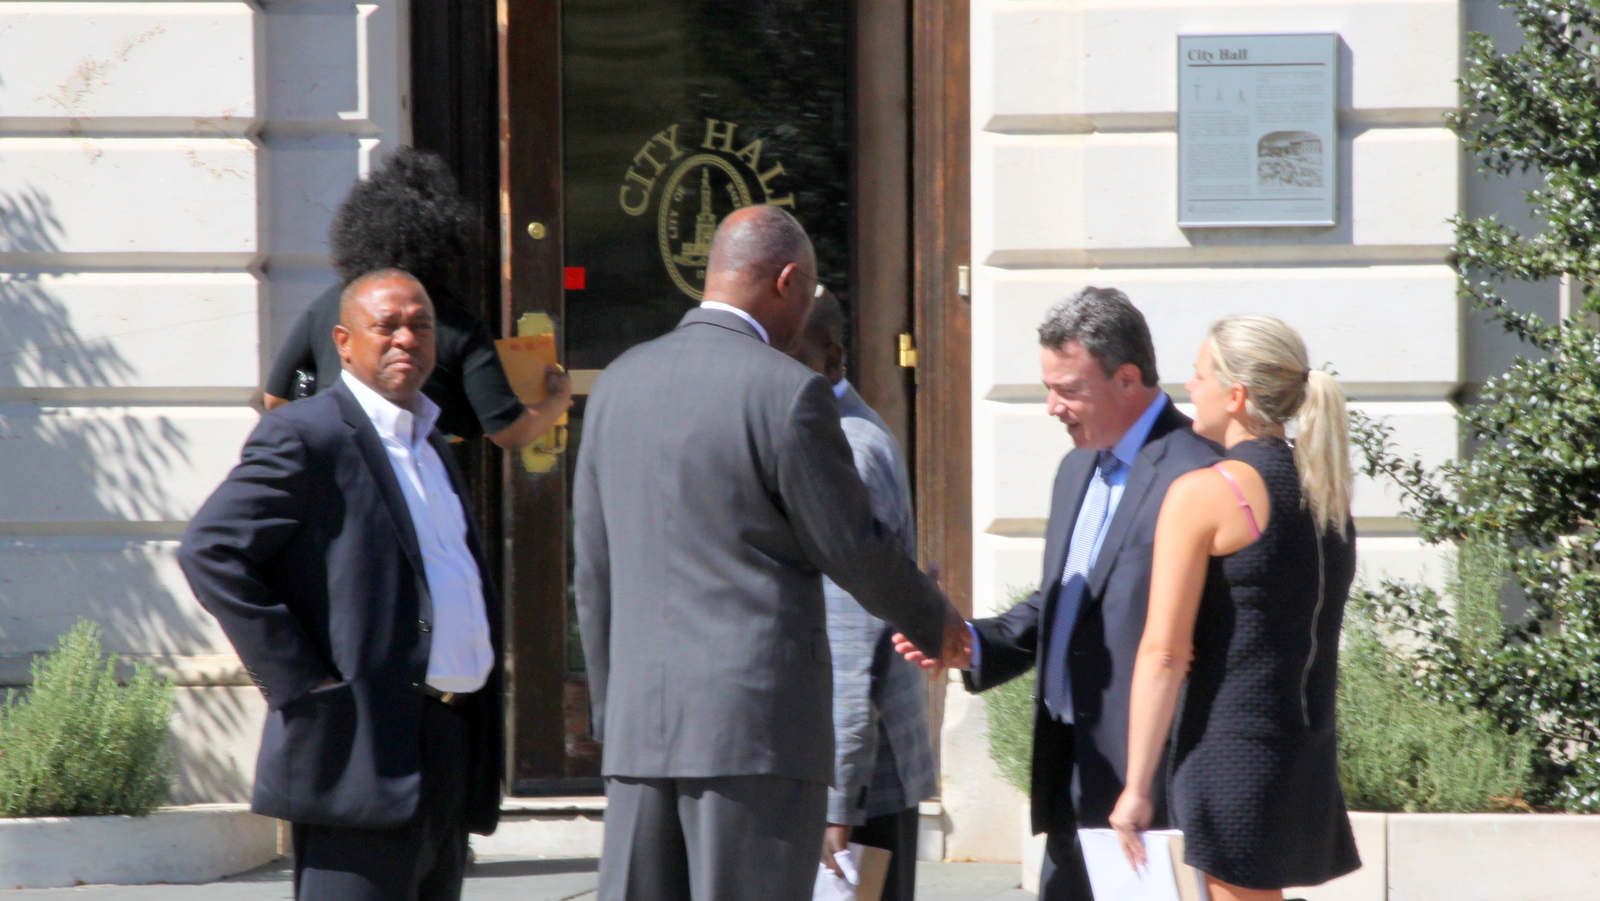 Seconds after telling reporters he supports the Port Covington TIF, Carl Stokes clasps hands with the developer's attorney, Jon Laria. (Fern Shen)